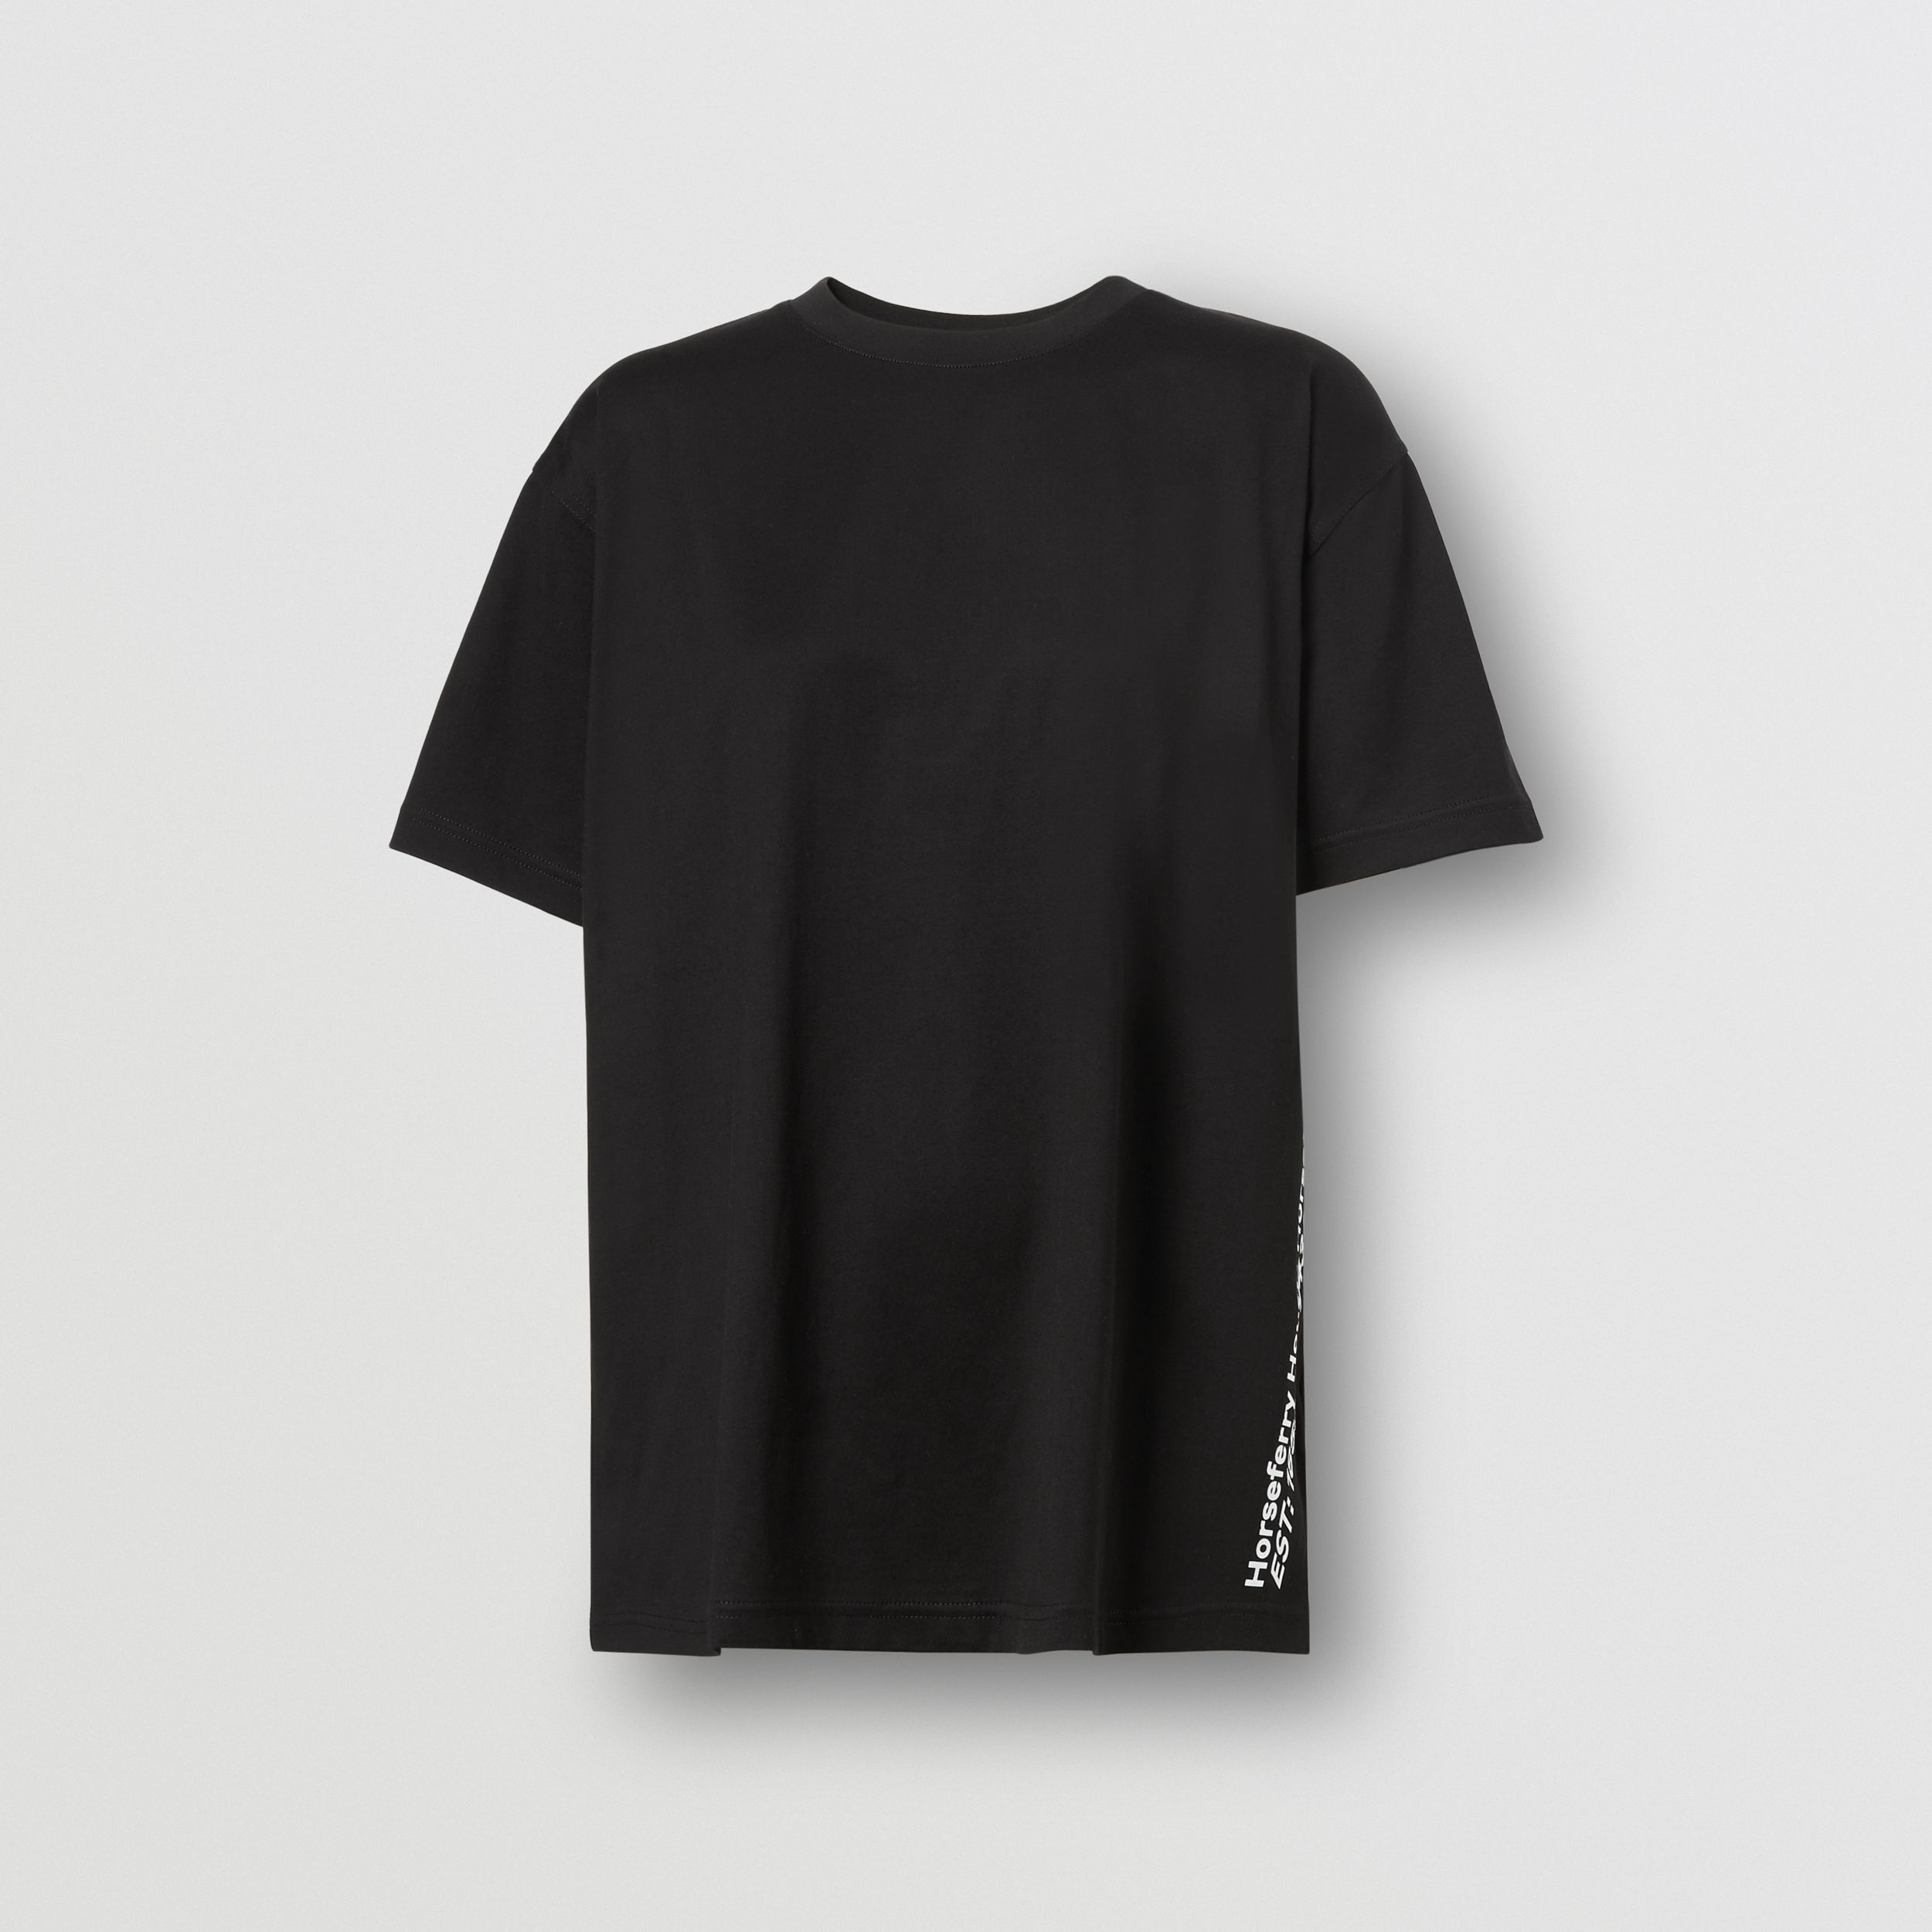 Coordinates Print Cotton Oversized T-shirt in Black - Women | Burberry - 4